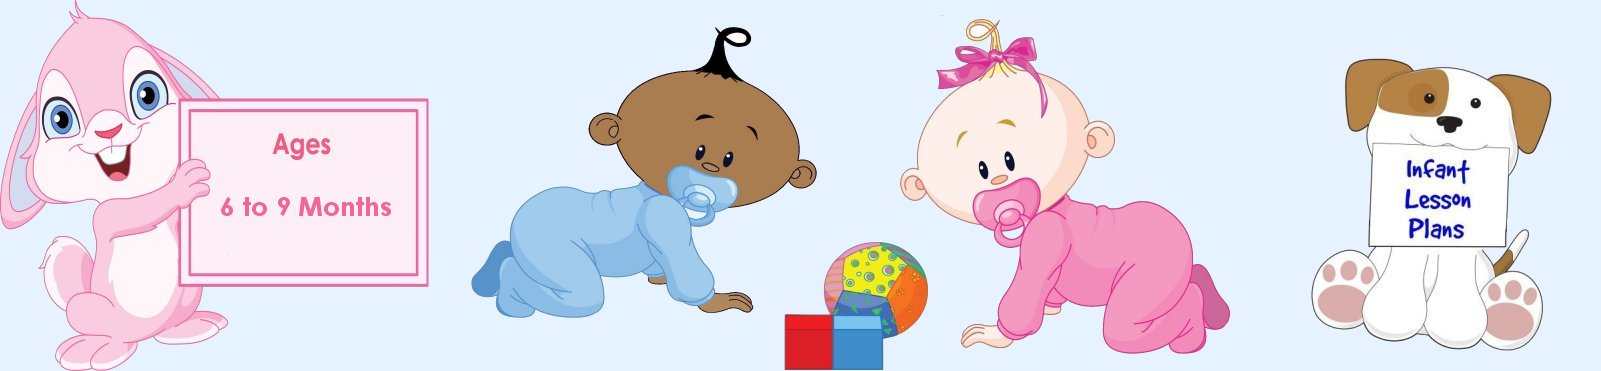 Infant Activity Lesson Plans 6 to 9 Months Old